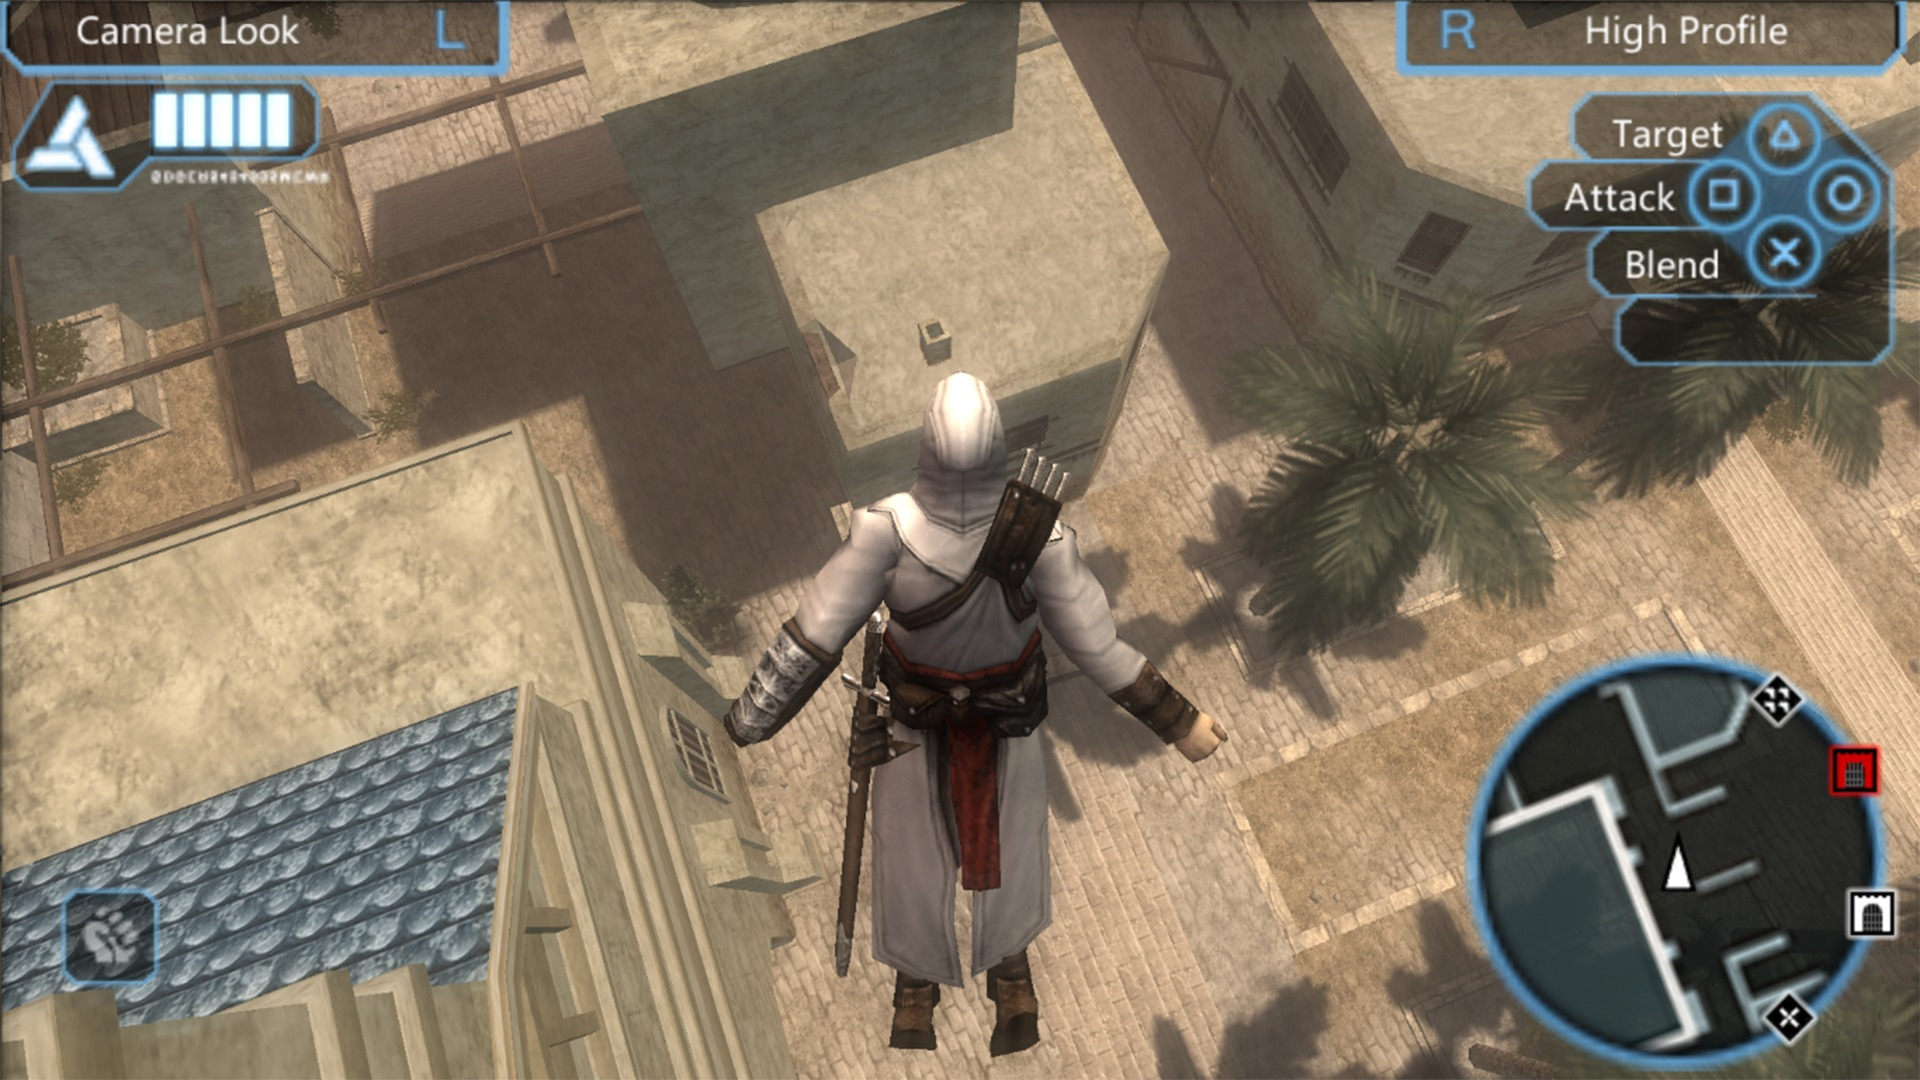 Screenshots and Videos - PPSSPP - PSP emulator for Android